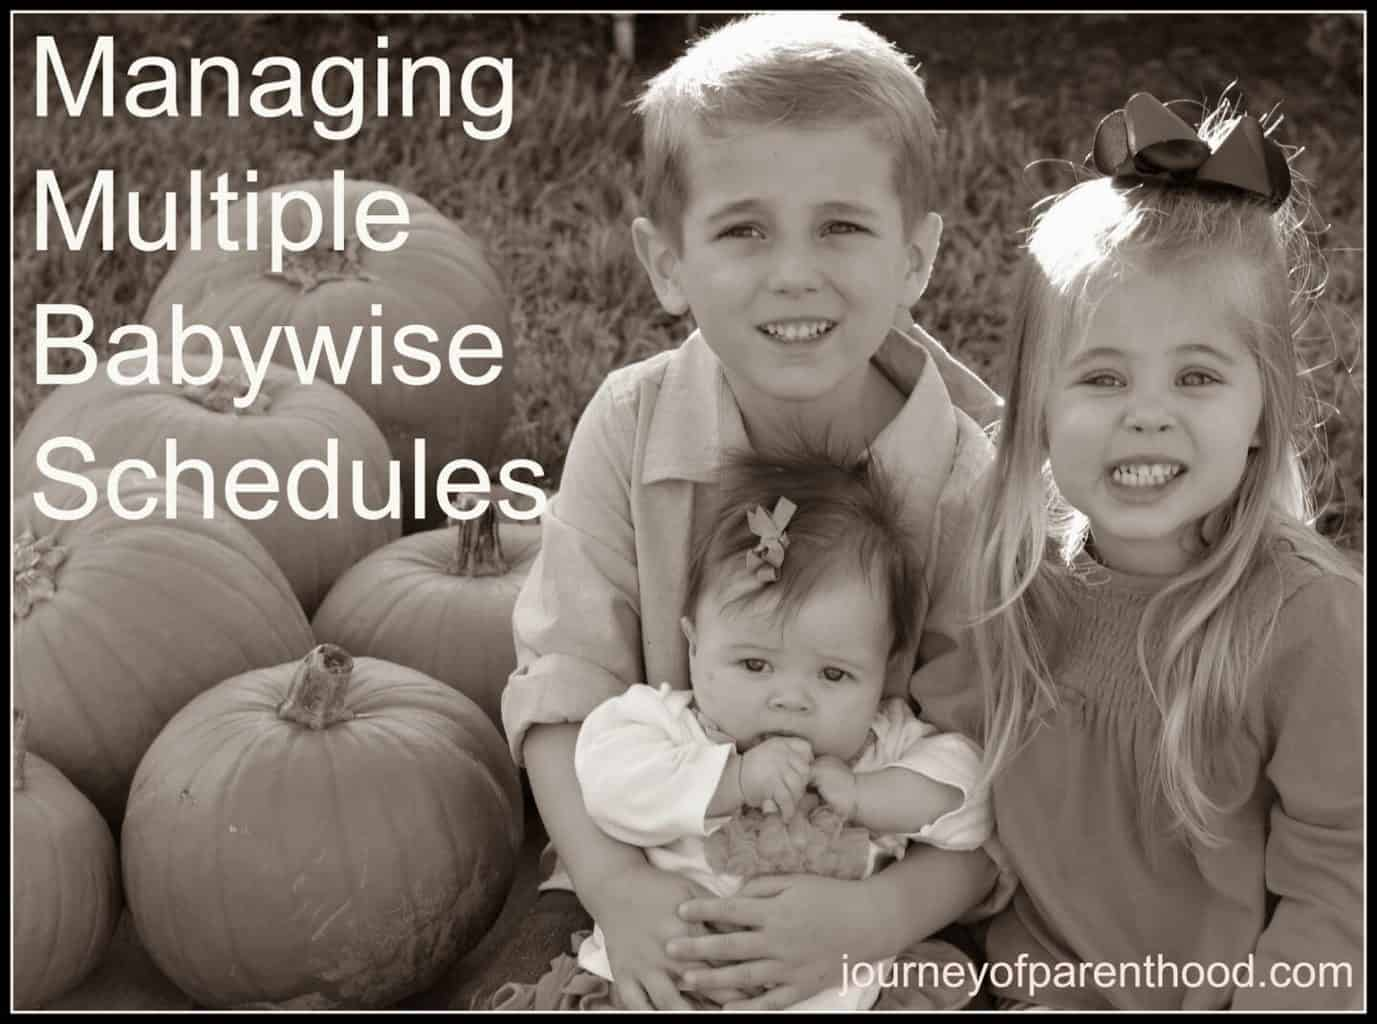 managing multiple babywise schedules